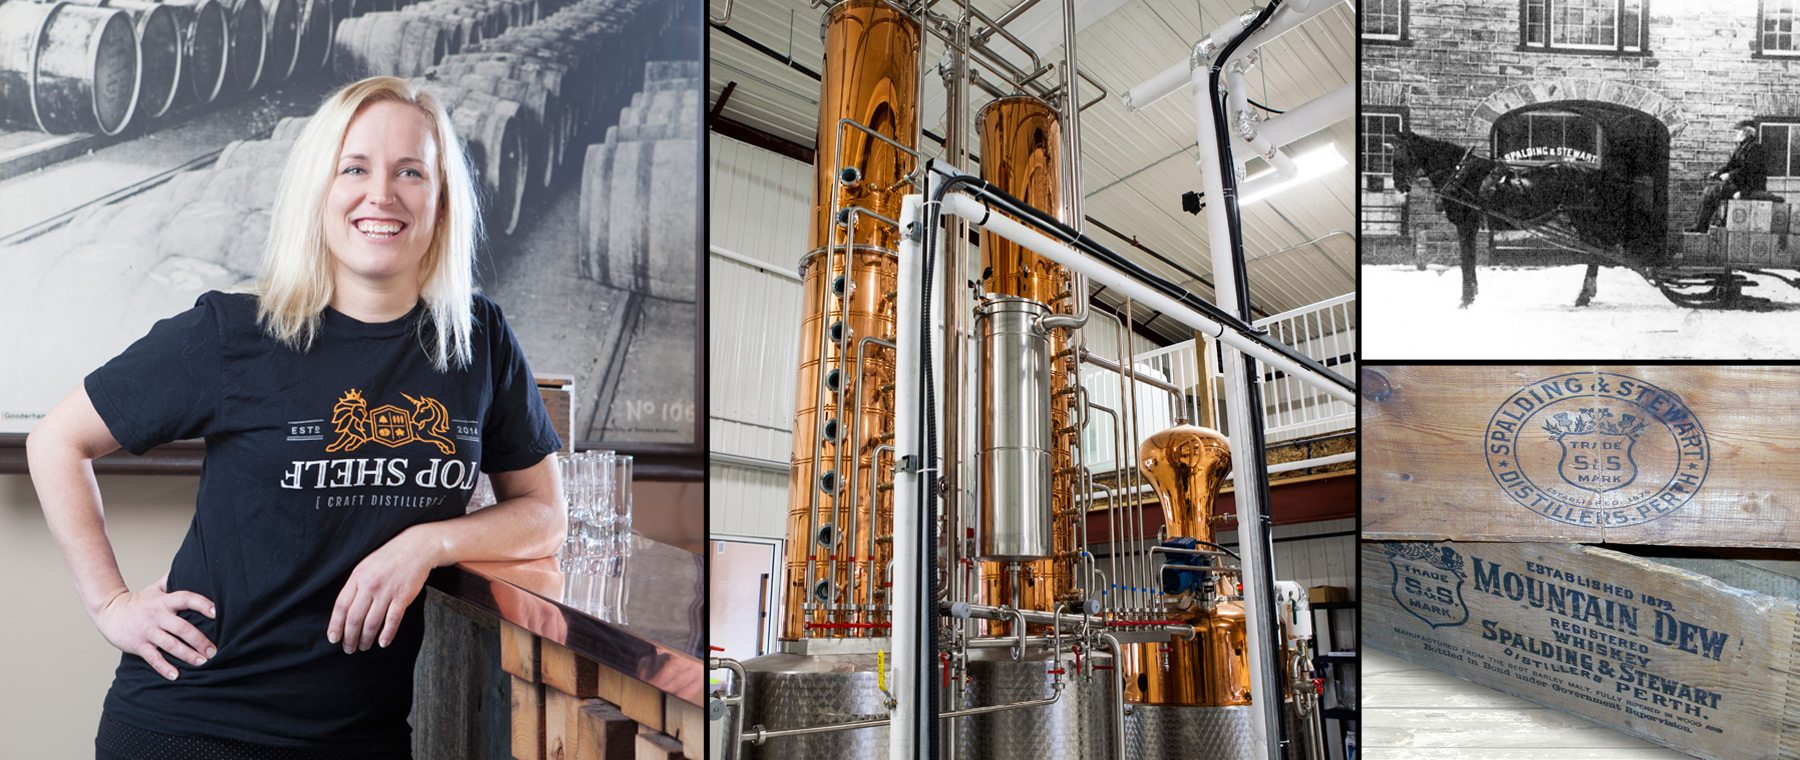 Perth, dry no more. For its 200th anniversary, distilling returns to historic town